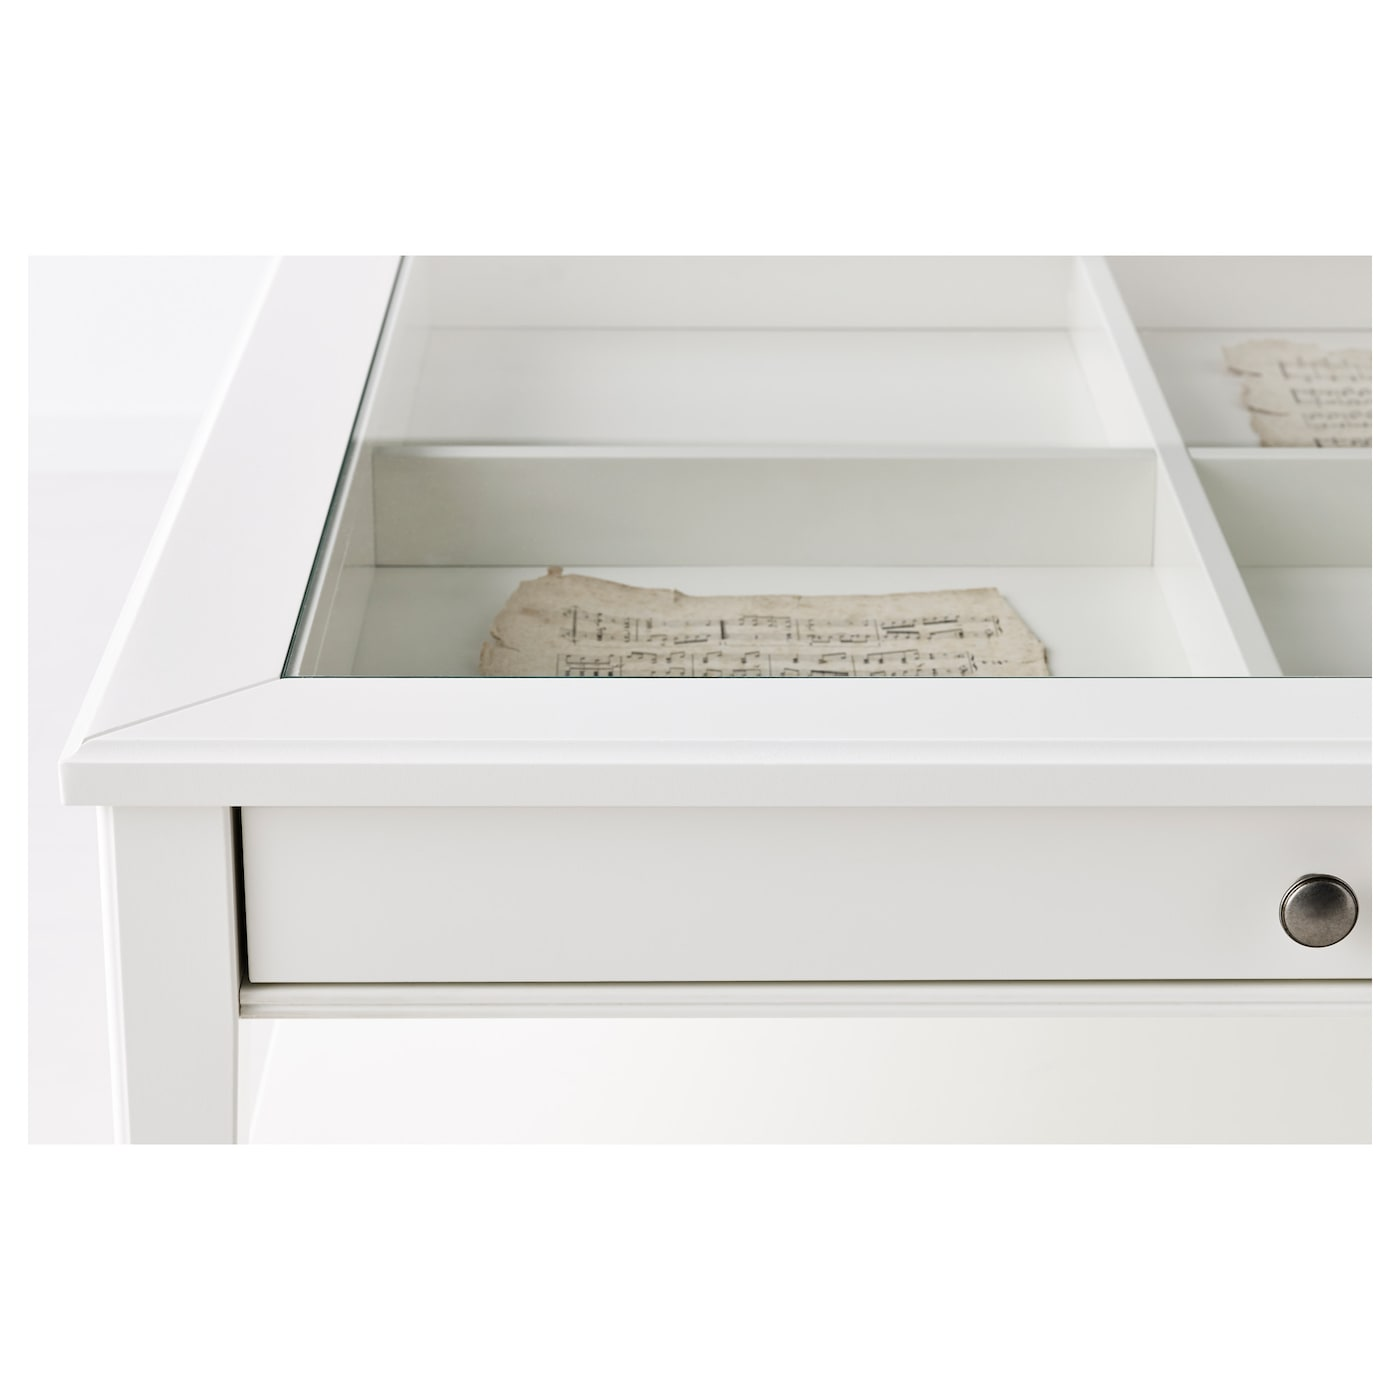 wohnzimmertisch ikea:IKEA LIATORP coffee table Practical storage space underneath the table